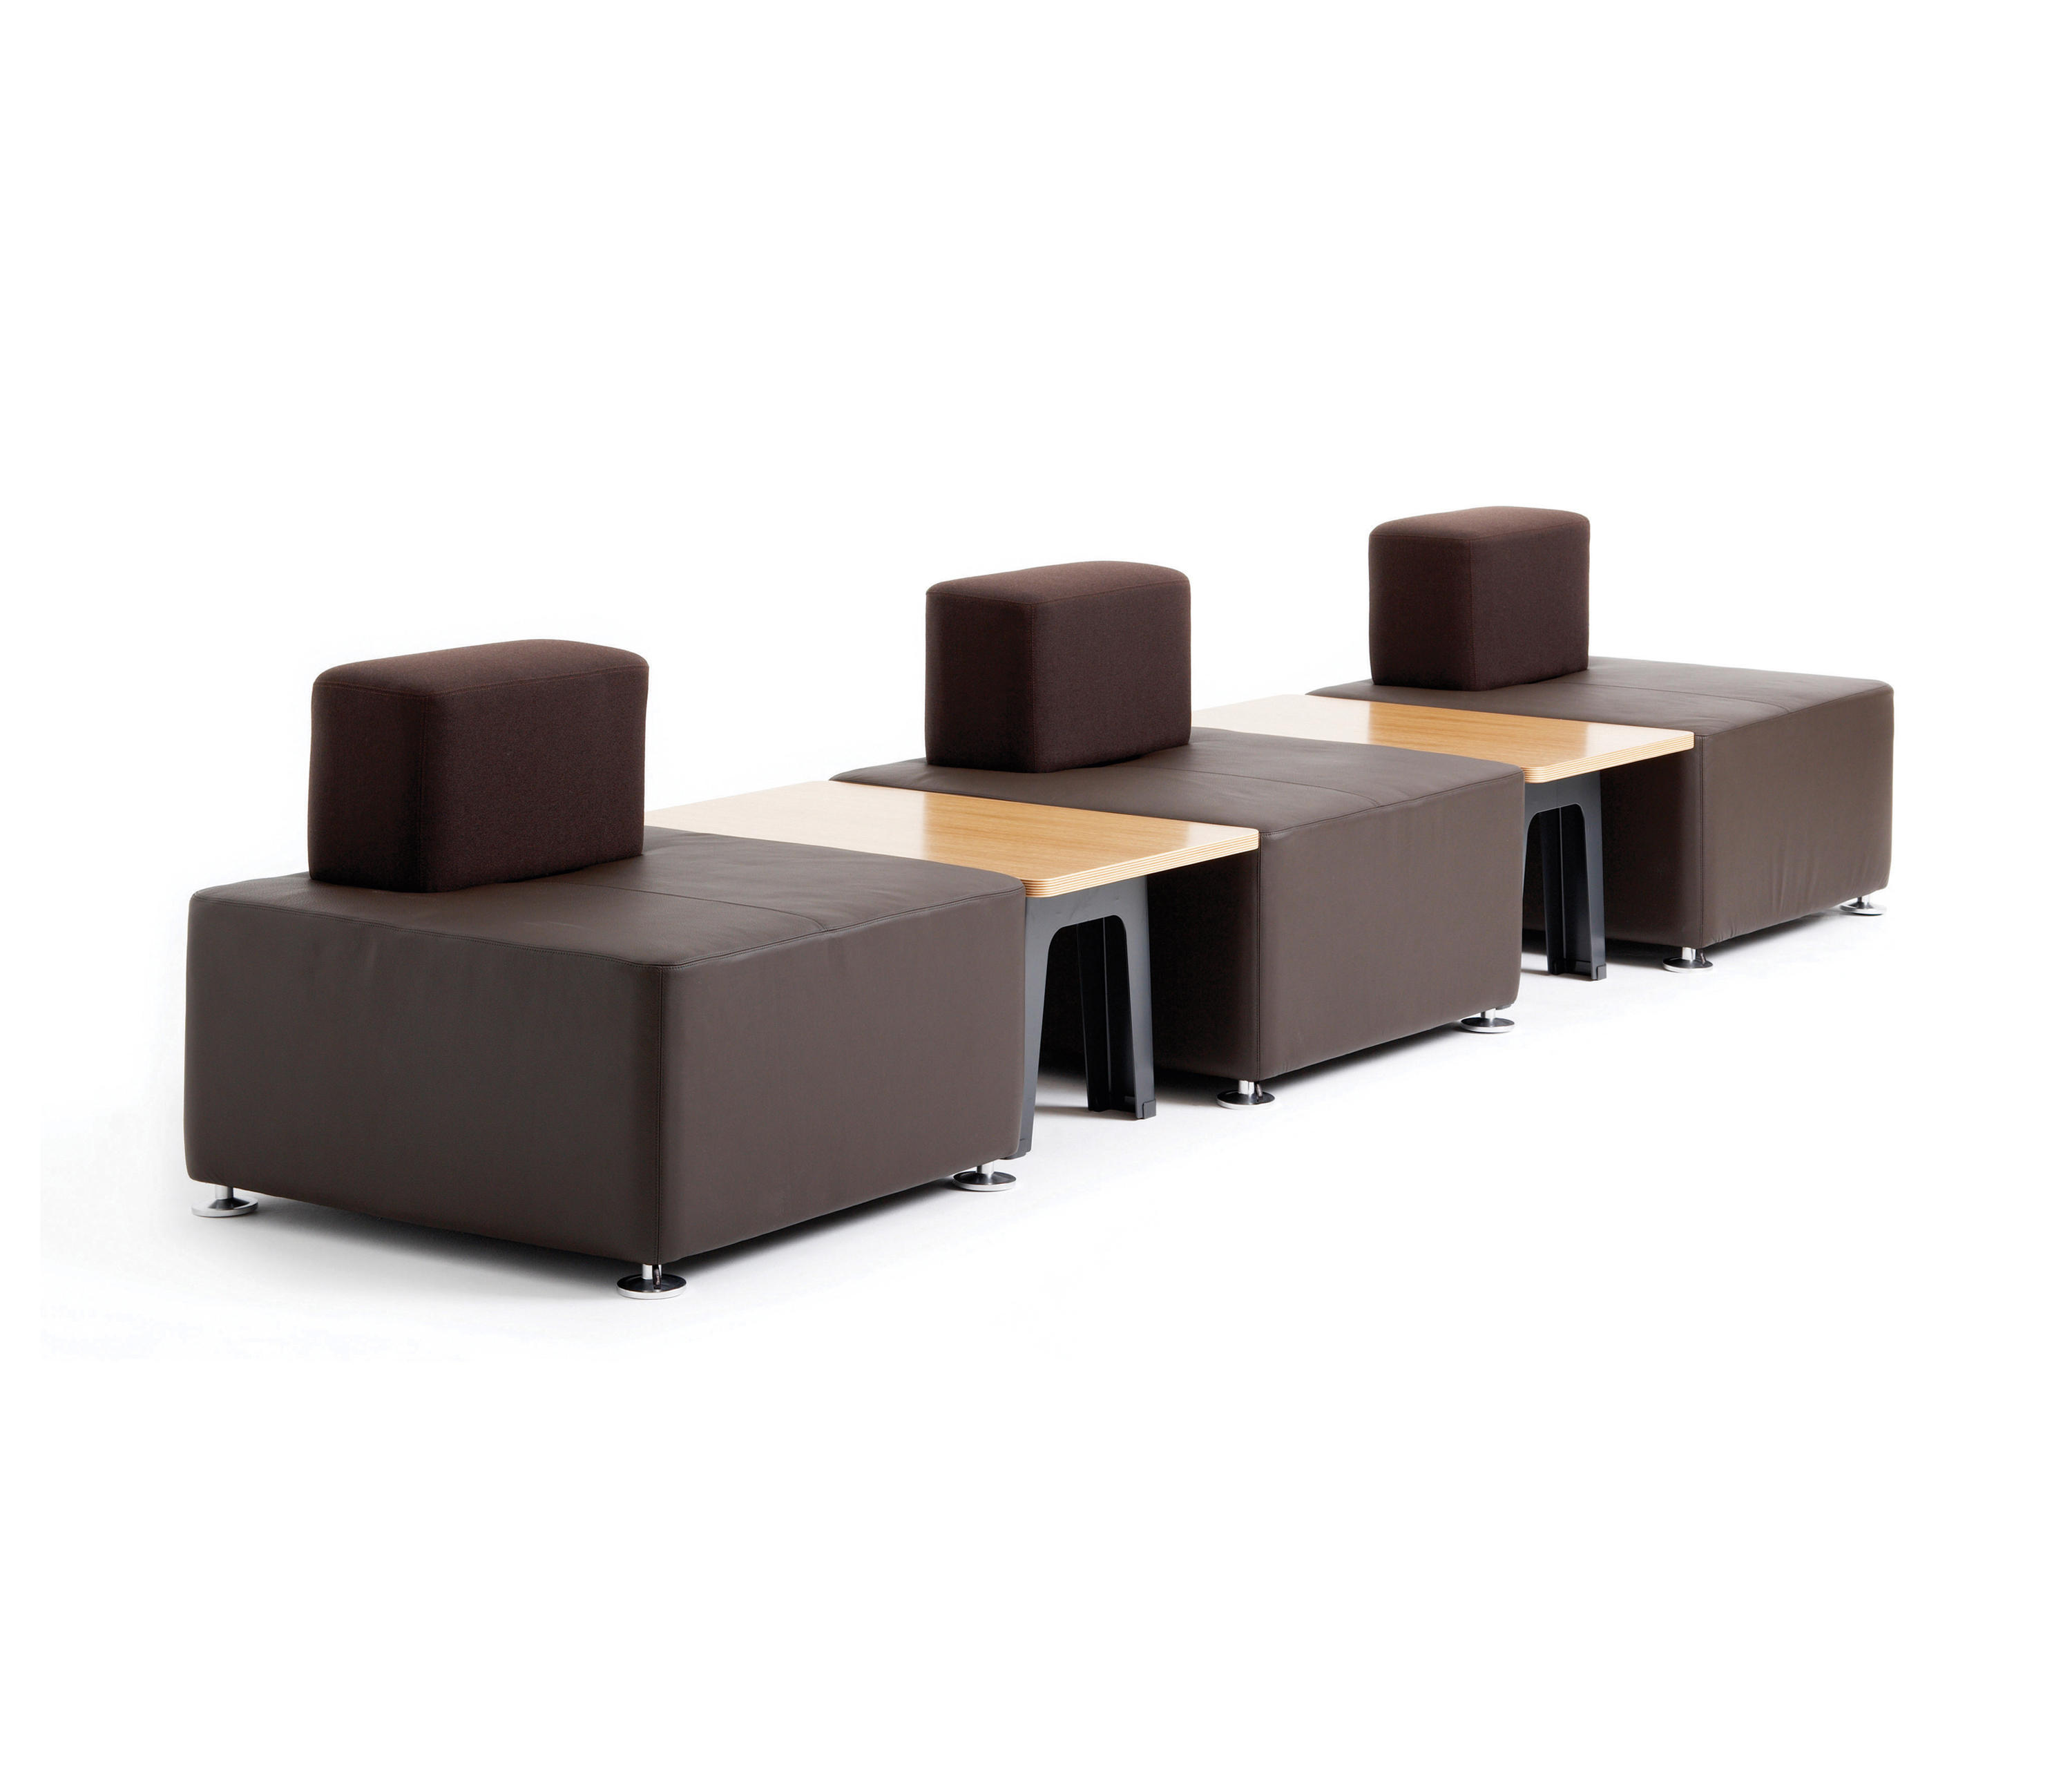 b free lounge lounge work seating from steelcase. Black Bedroom Furniture Sets. Home Design Ideas